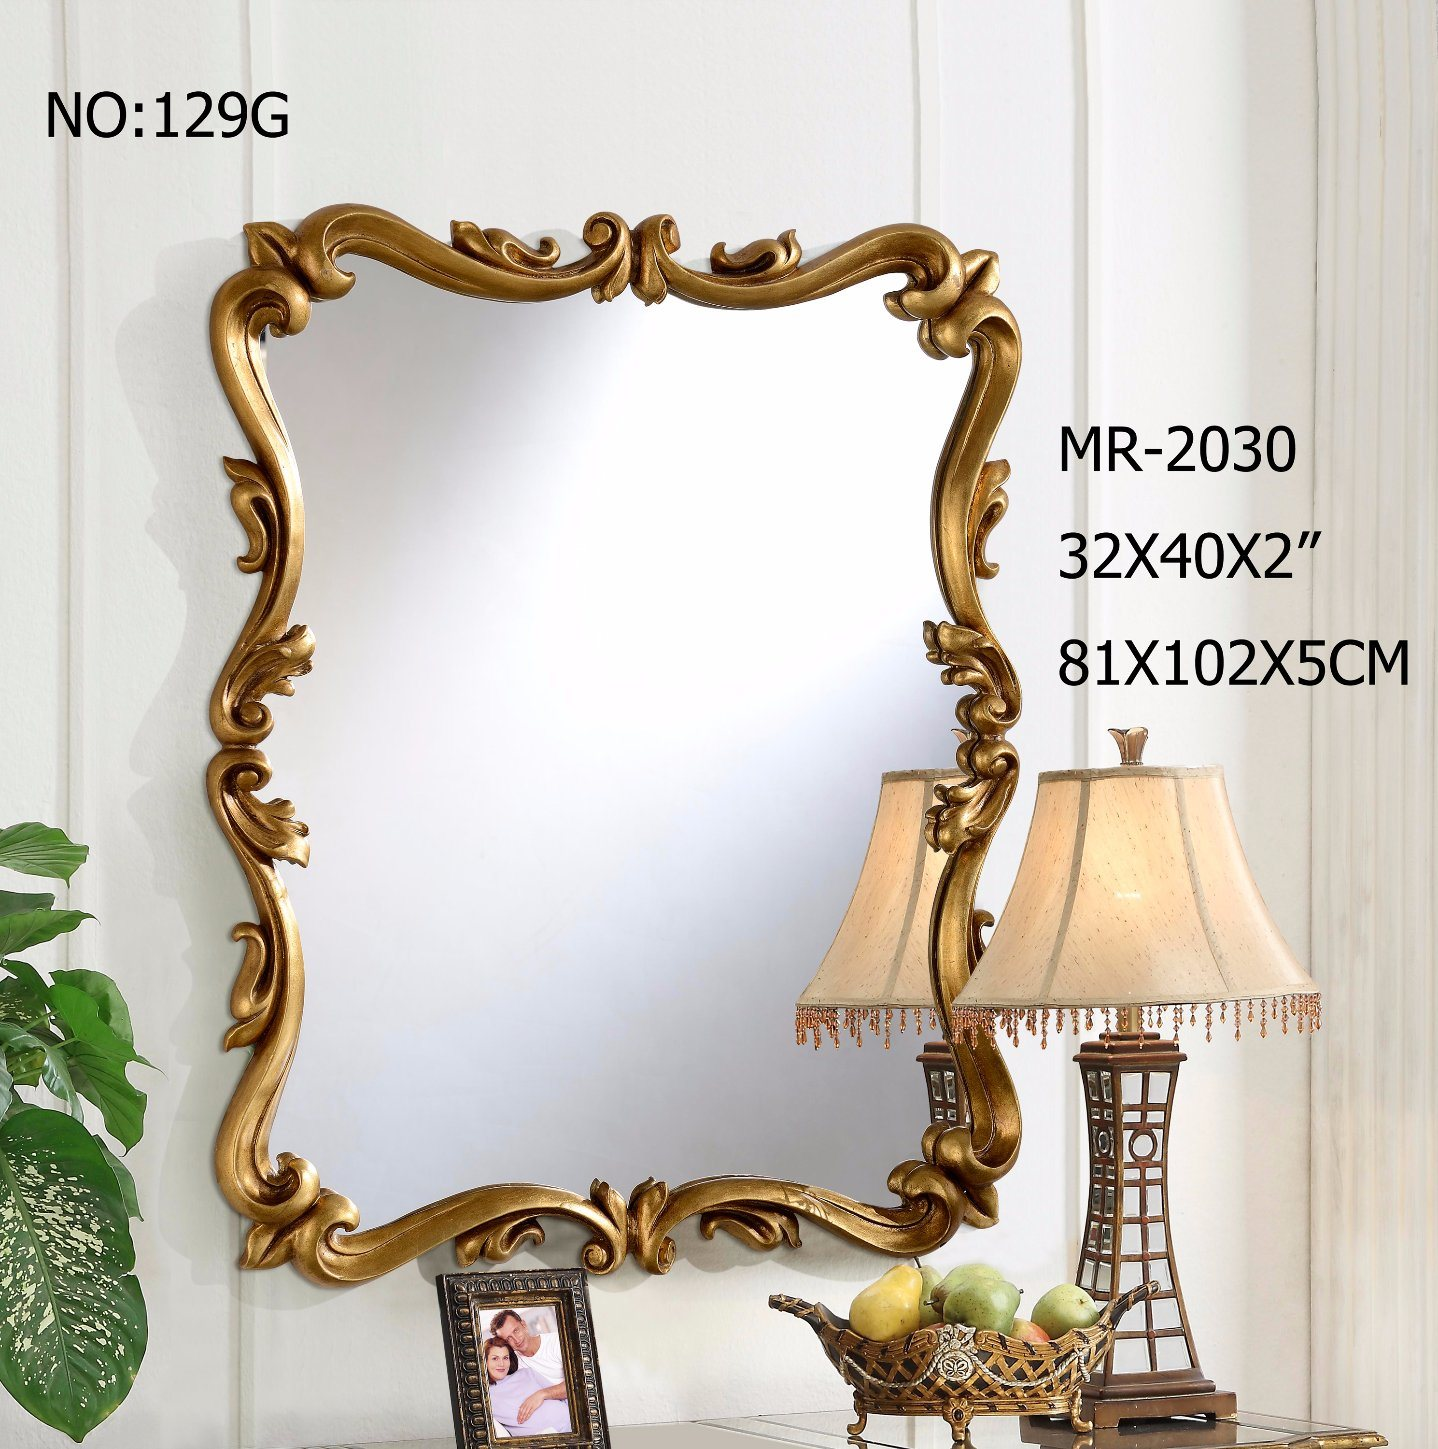 High Quantity Clear Decorative Wall Mirror From Guangdong Province